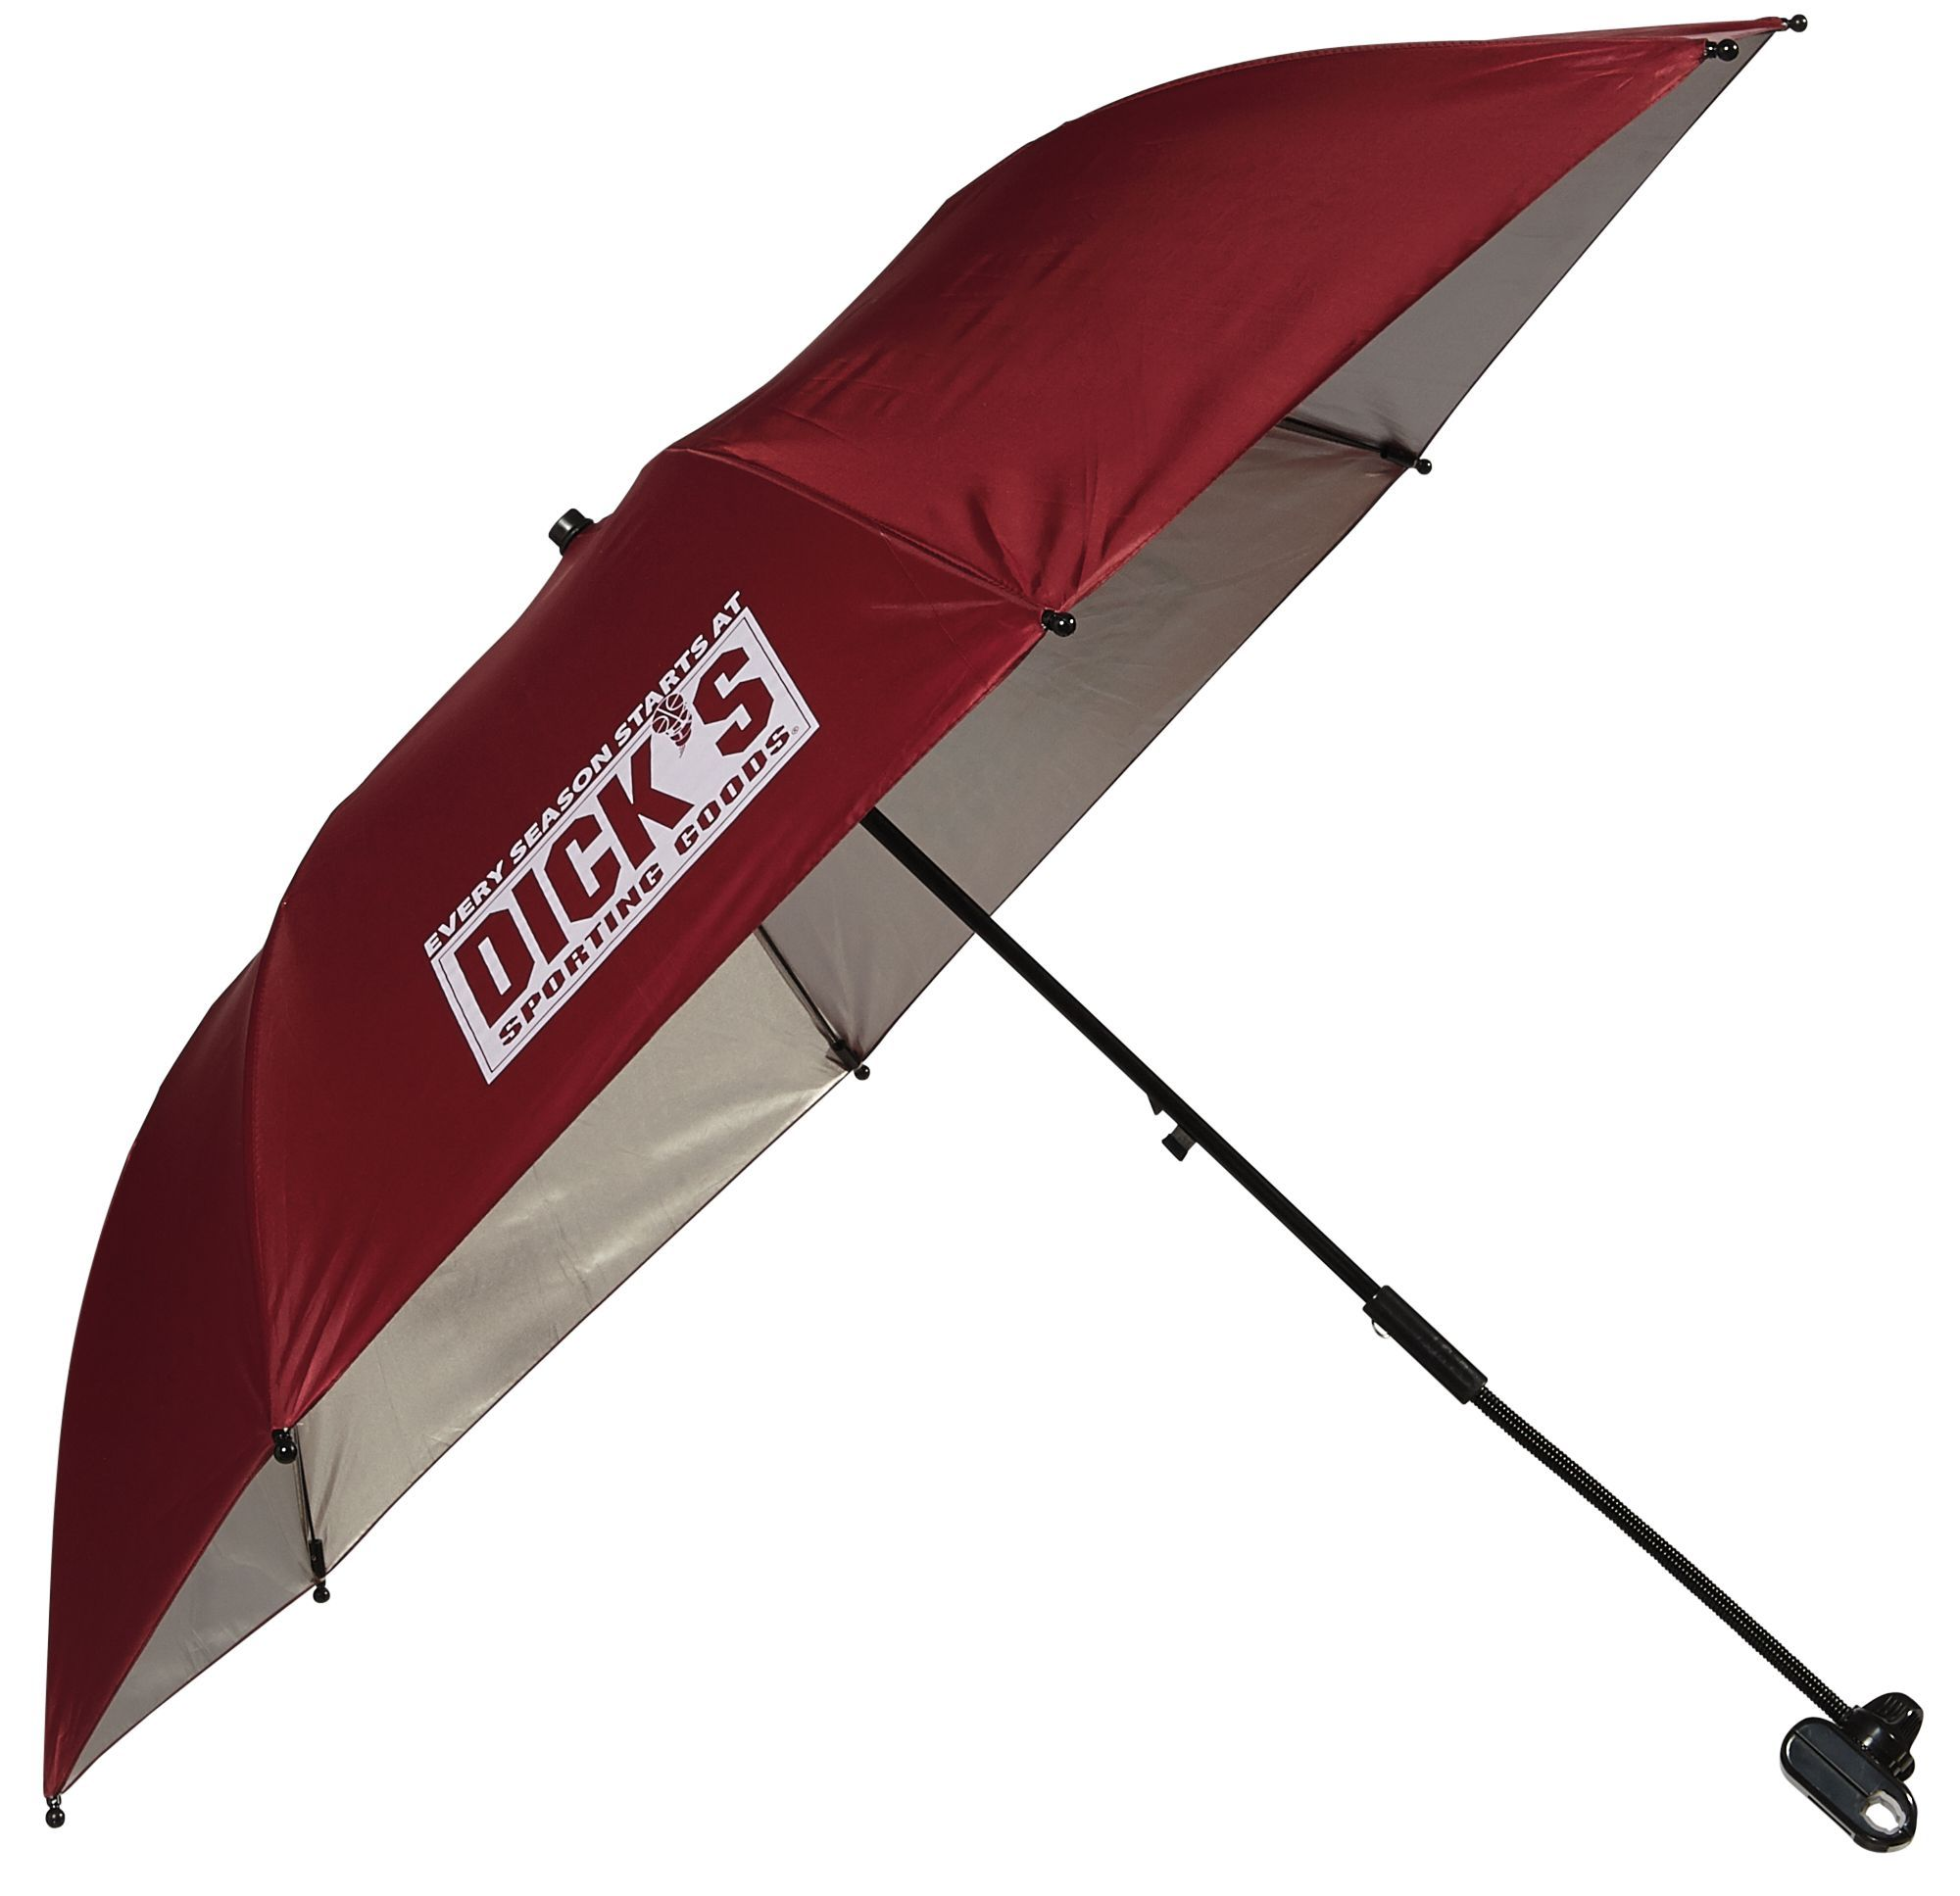 Clamp On Chair Umbrella Chair Umbrella Sports Cool Chairs Adjustable Clamp Sports